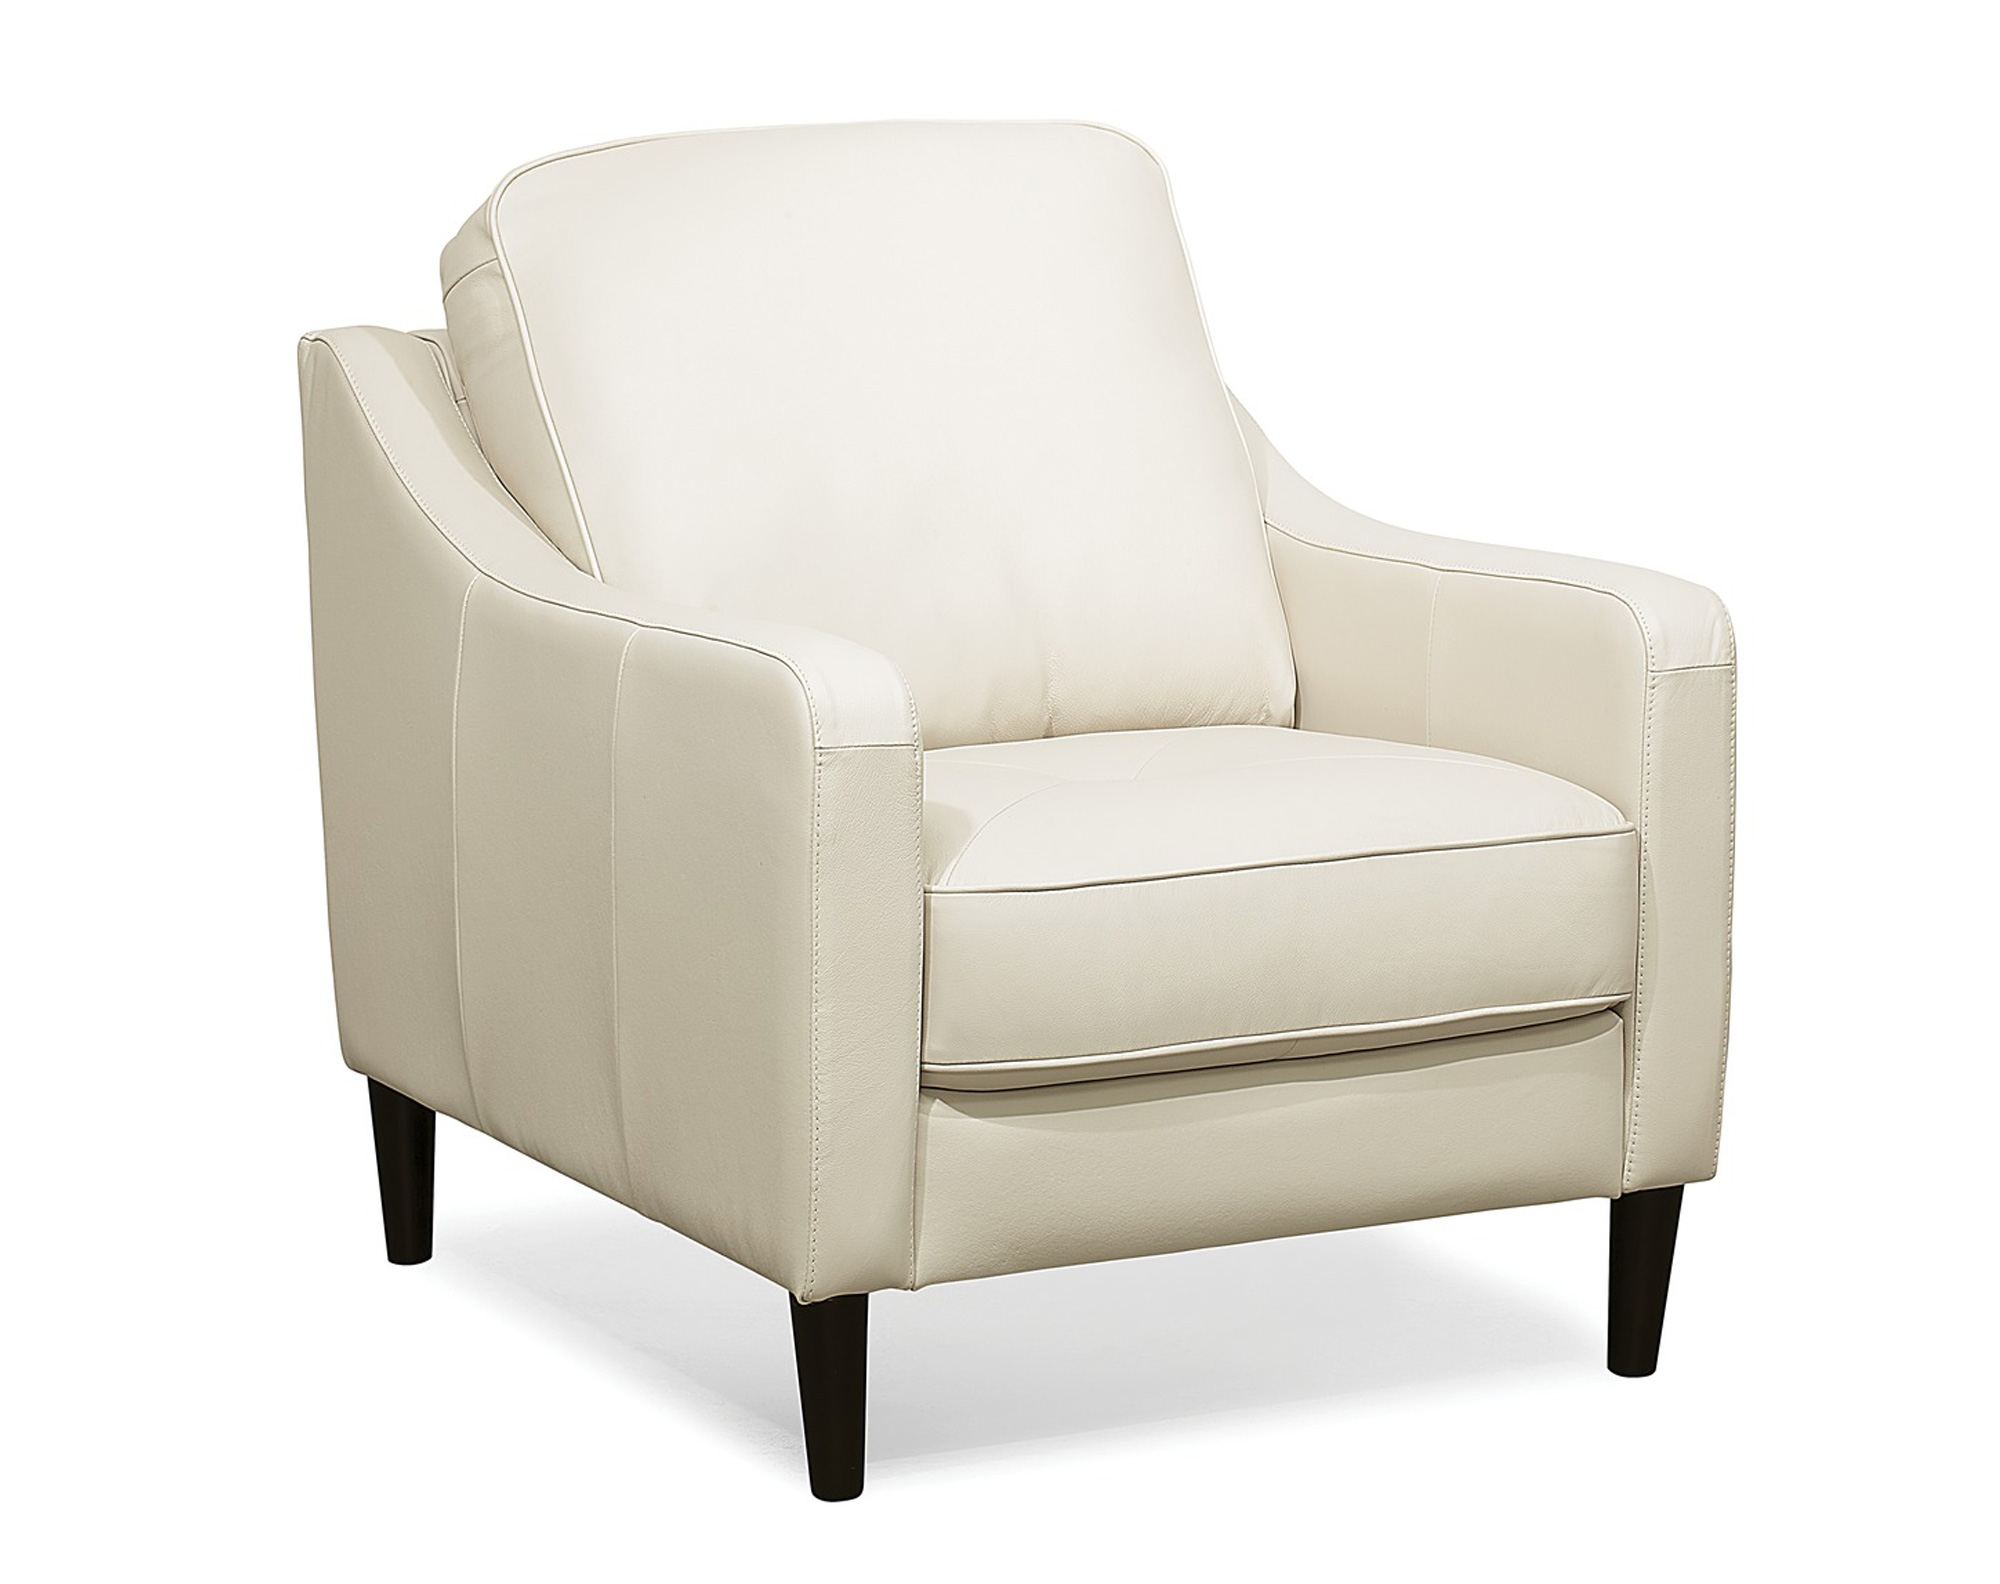 Super Andros Chair And Ottoman 350 Fabrics And Sofas And Sectionals Alphanode Cool Chair Designs And Ideas Alphanodeonline